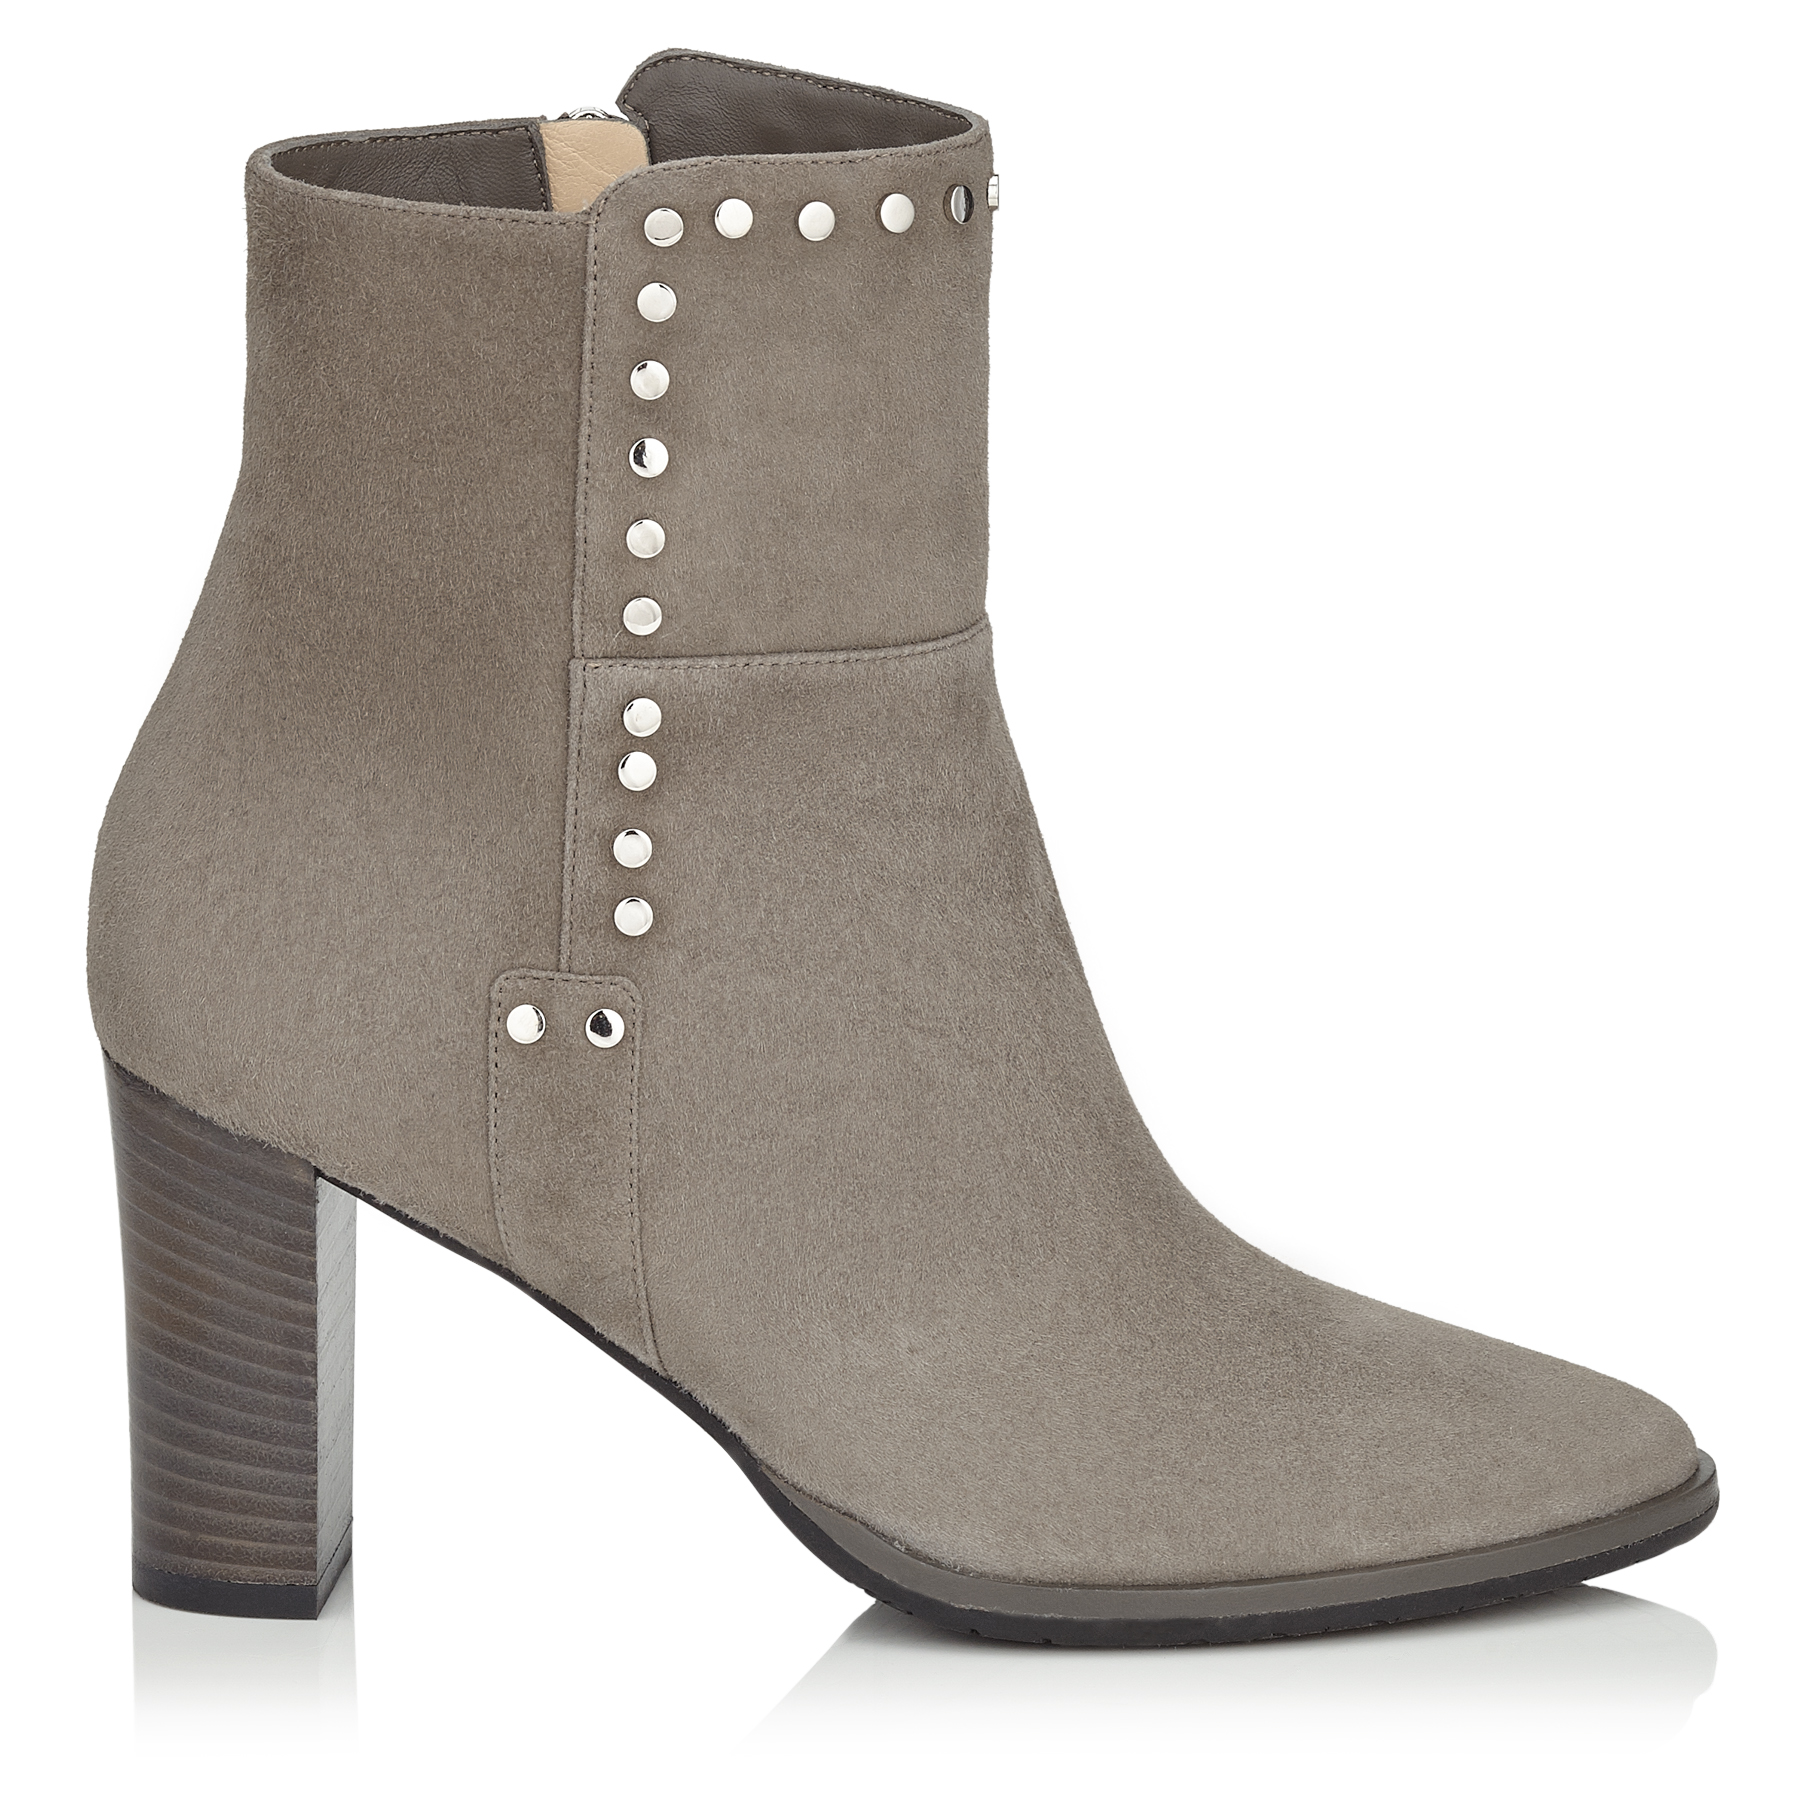 HARLOW 80 Taupe Grey Suede Boots with Stud Trim